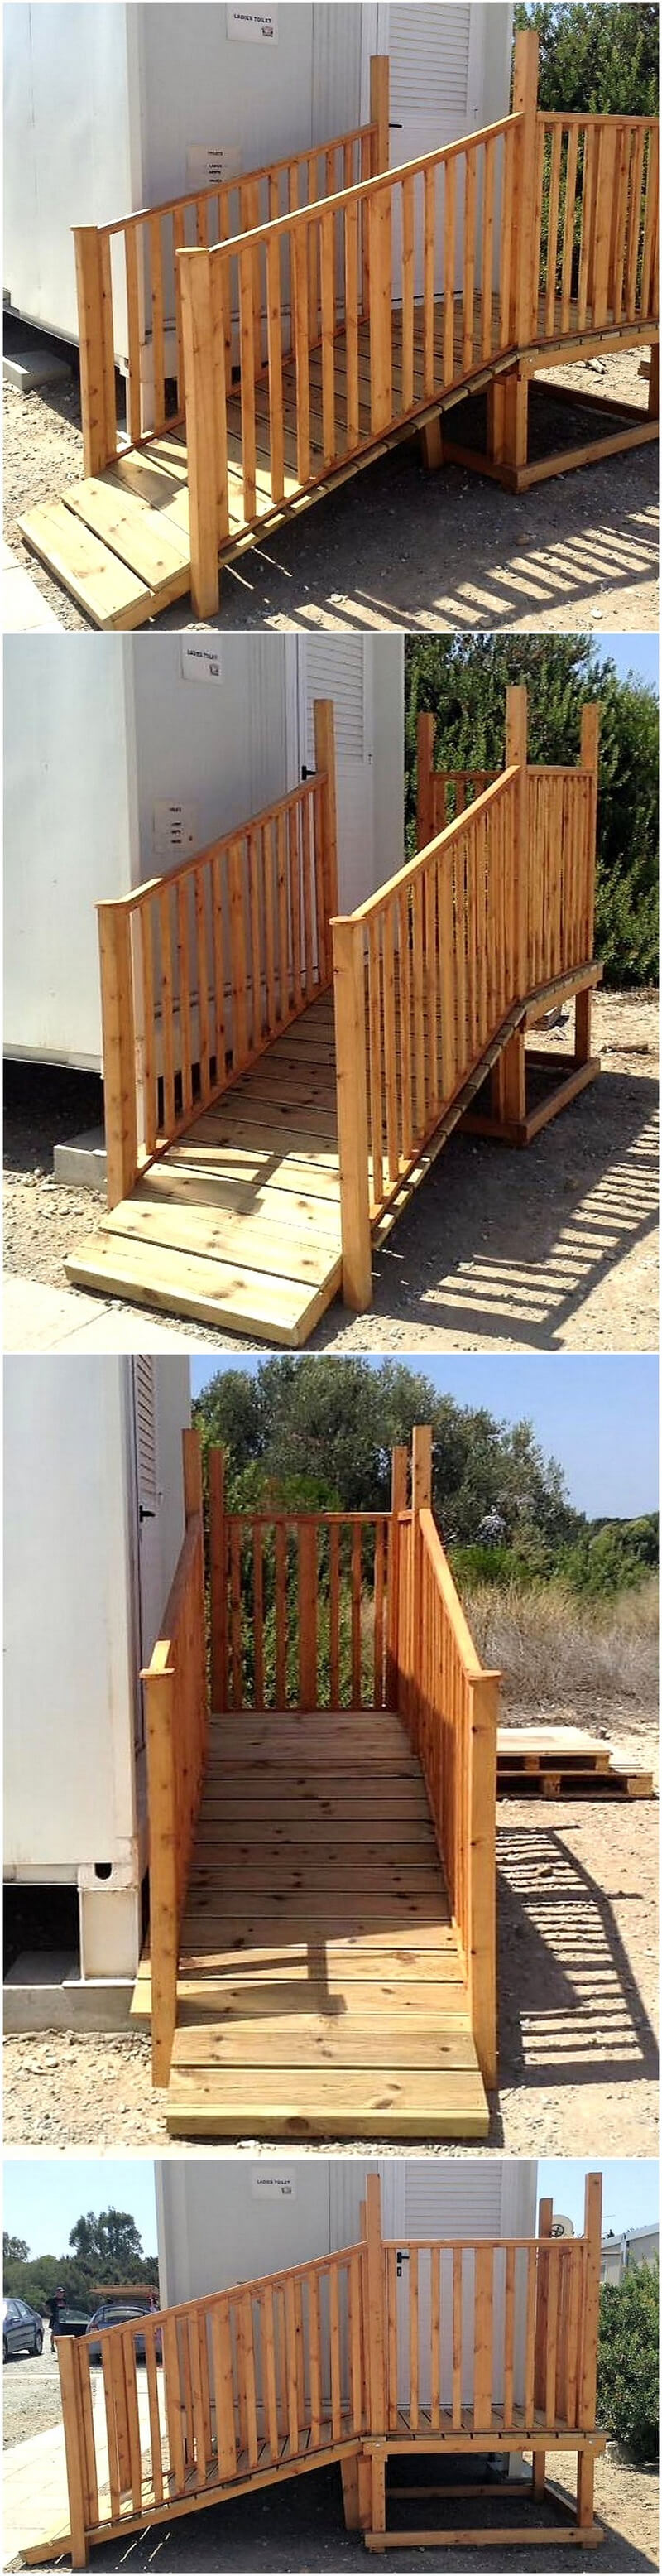 recycled pallets stairs idea